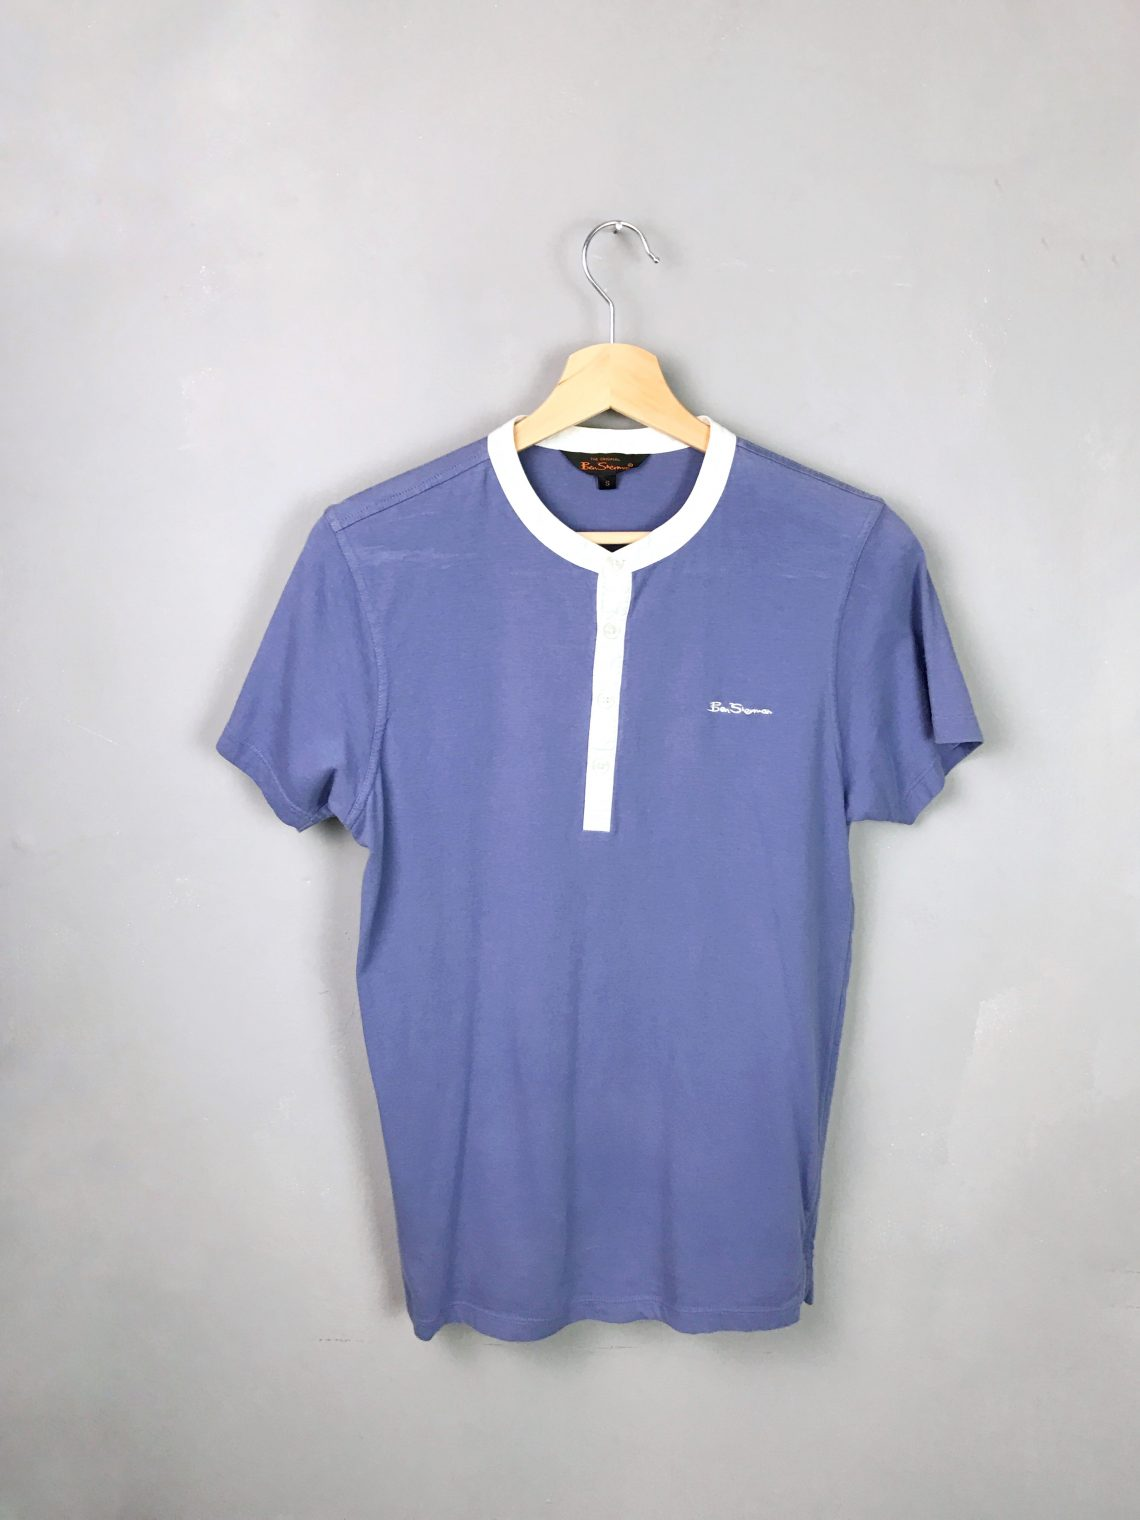 BEN SHERMAN T-Shirt purple blue white collar